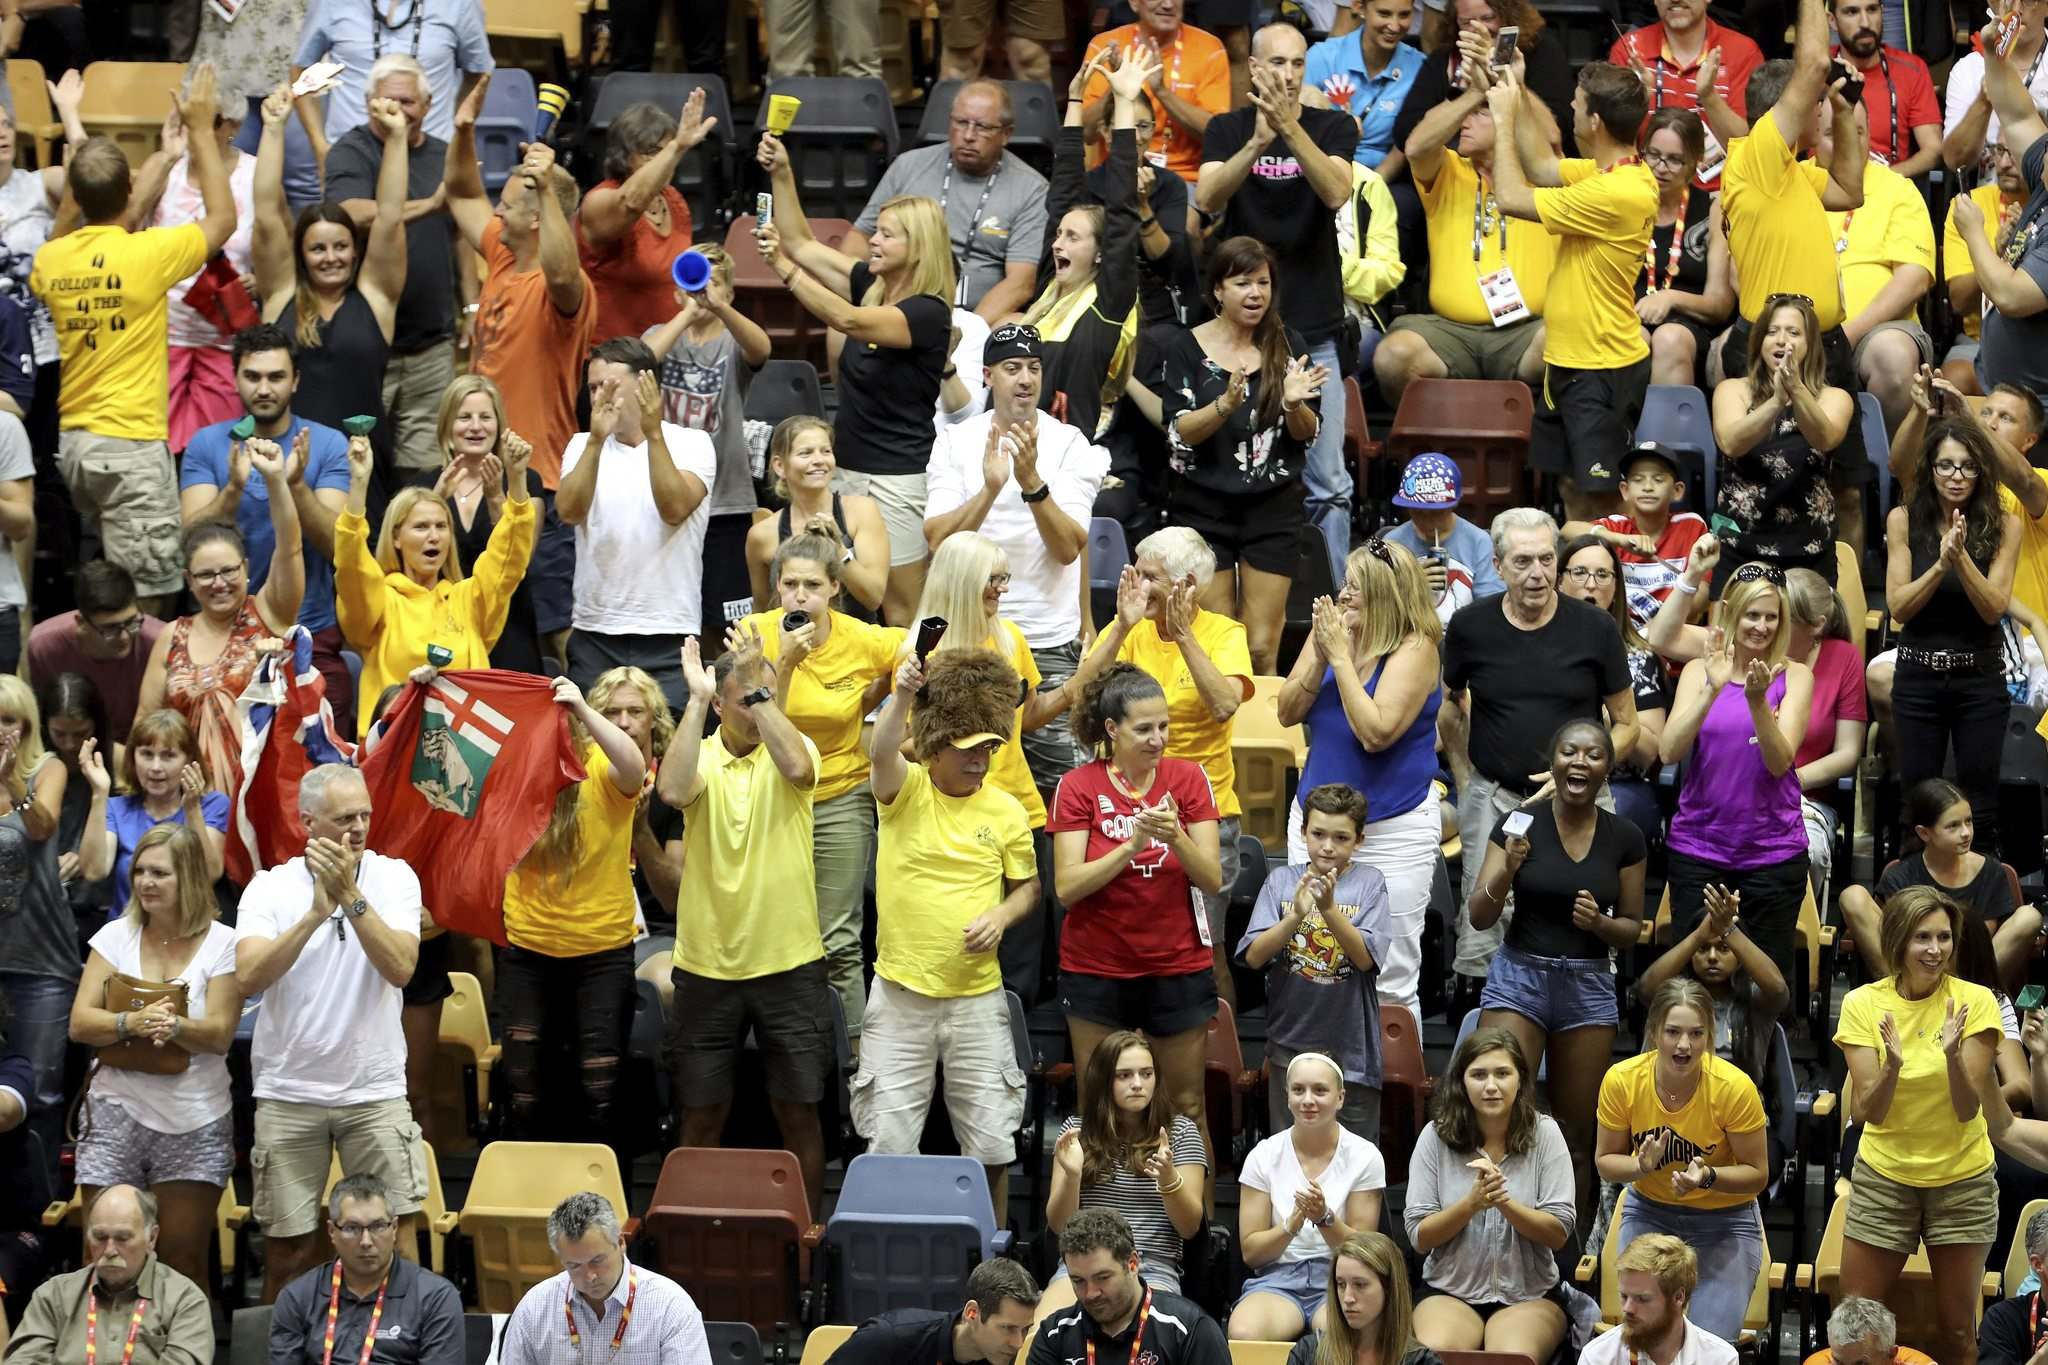 TREVOR HAGAN / WINNIPEG FREE PRESS</p><p>Team Manitoba fans celebrate after winning a point on the way to taking volleyball gold.</p>